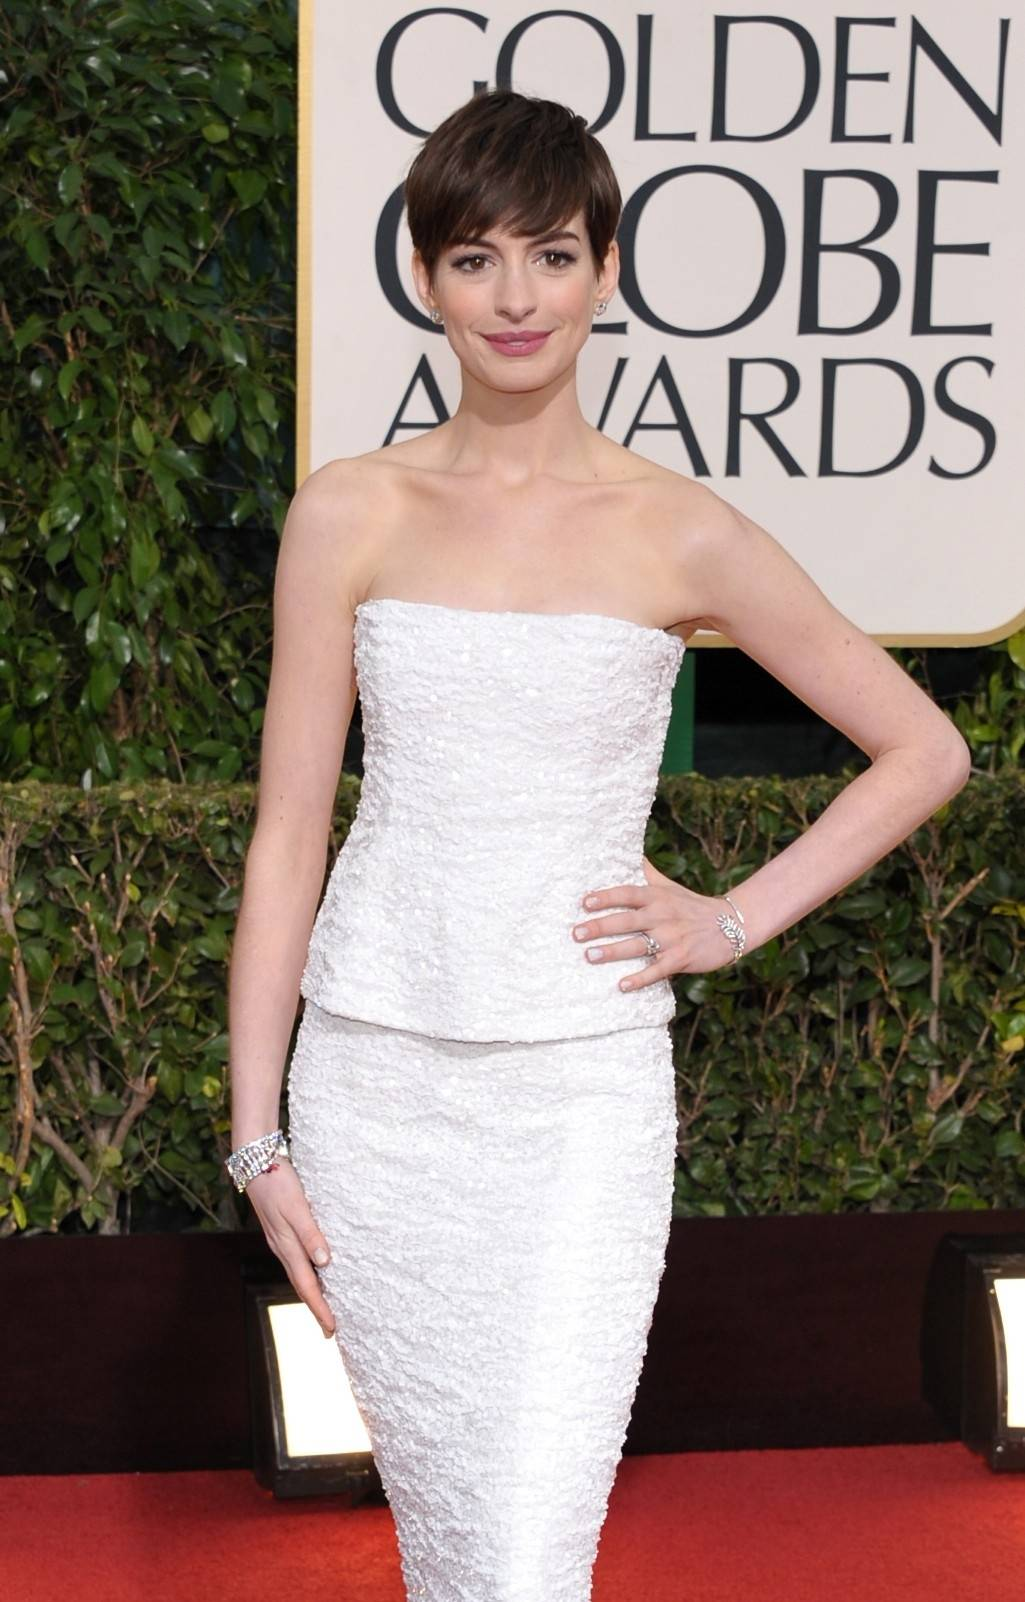 Actress and Golden Globe nominee Anne Hathaway goes for a more subdued glamour for awards night.